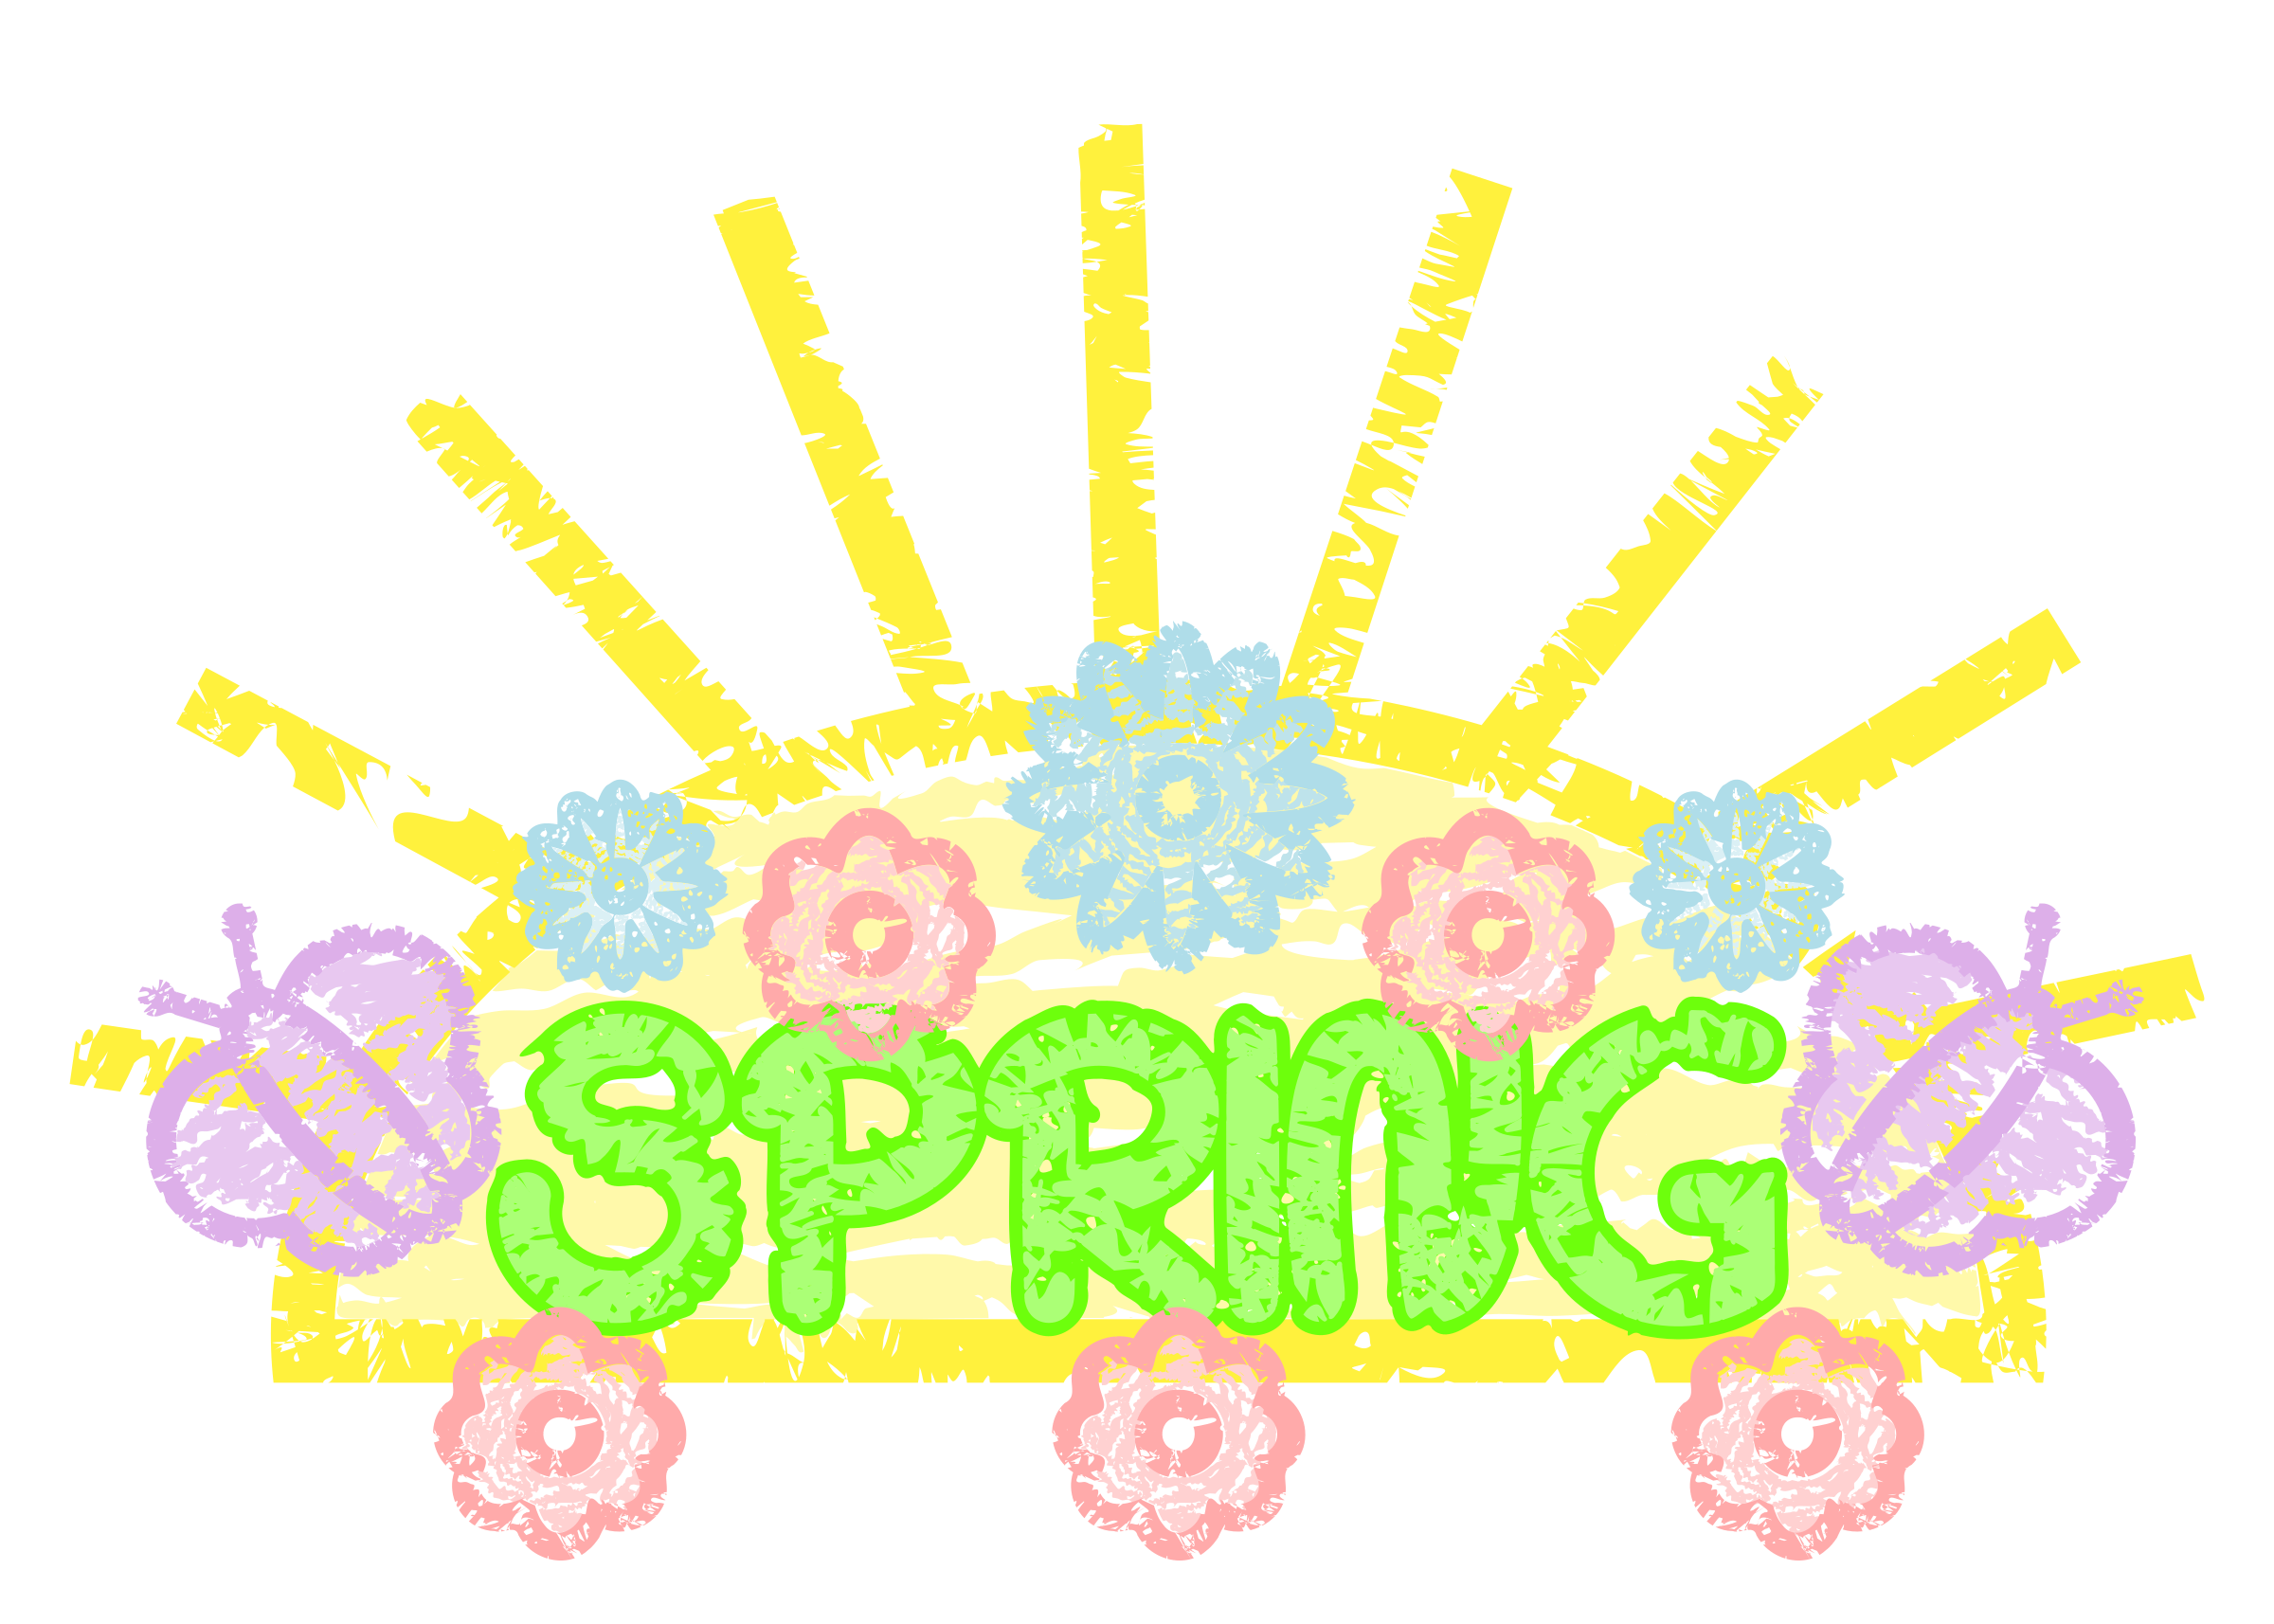 Spring art big image. Working clipart word